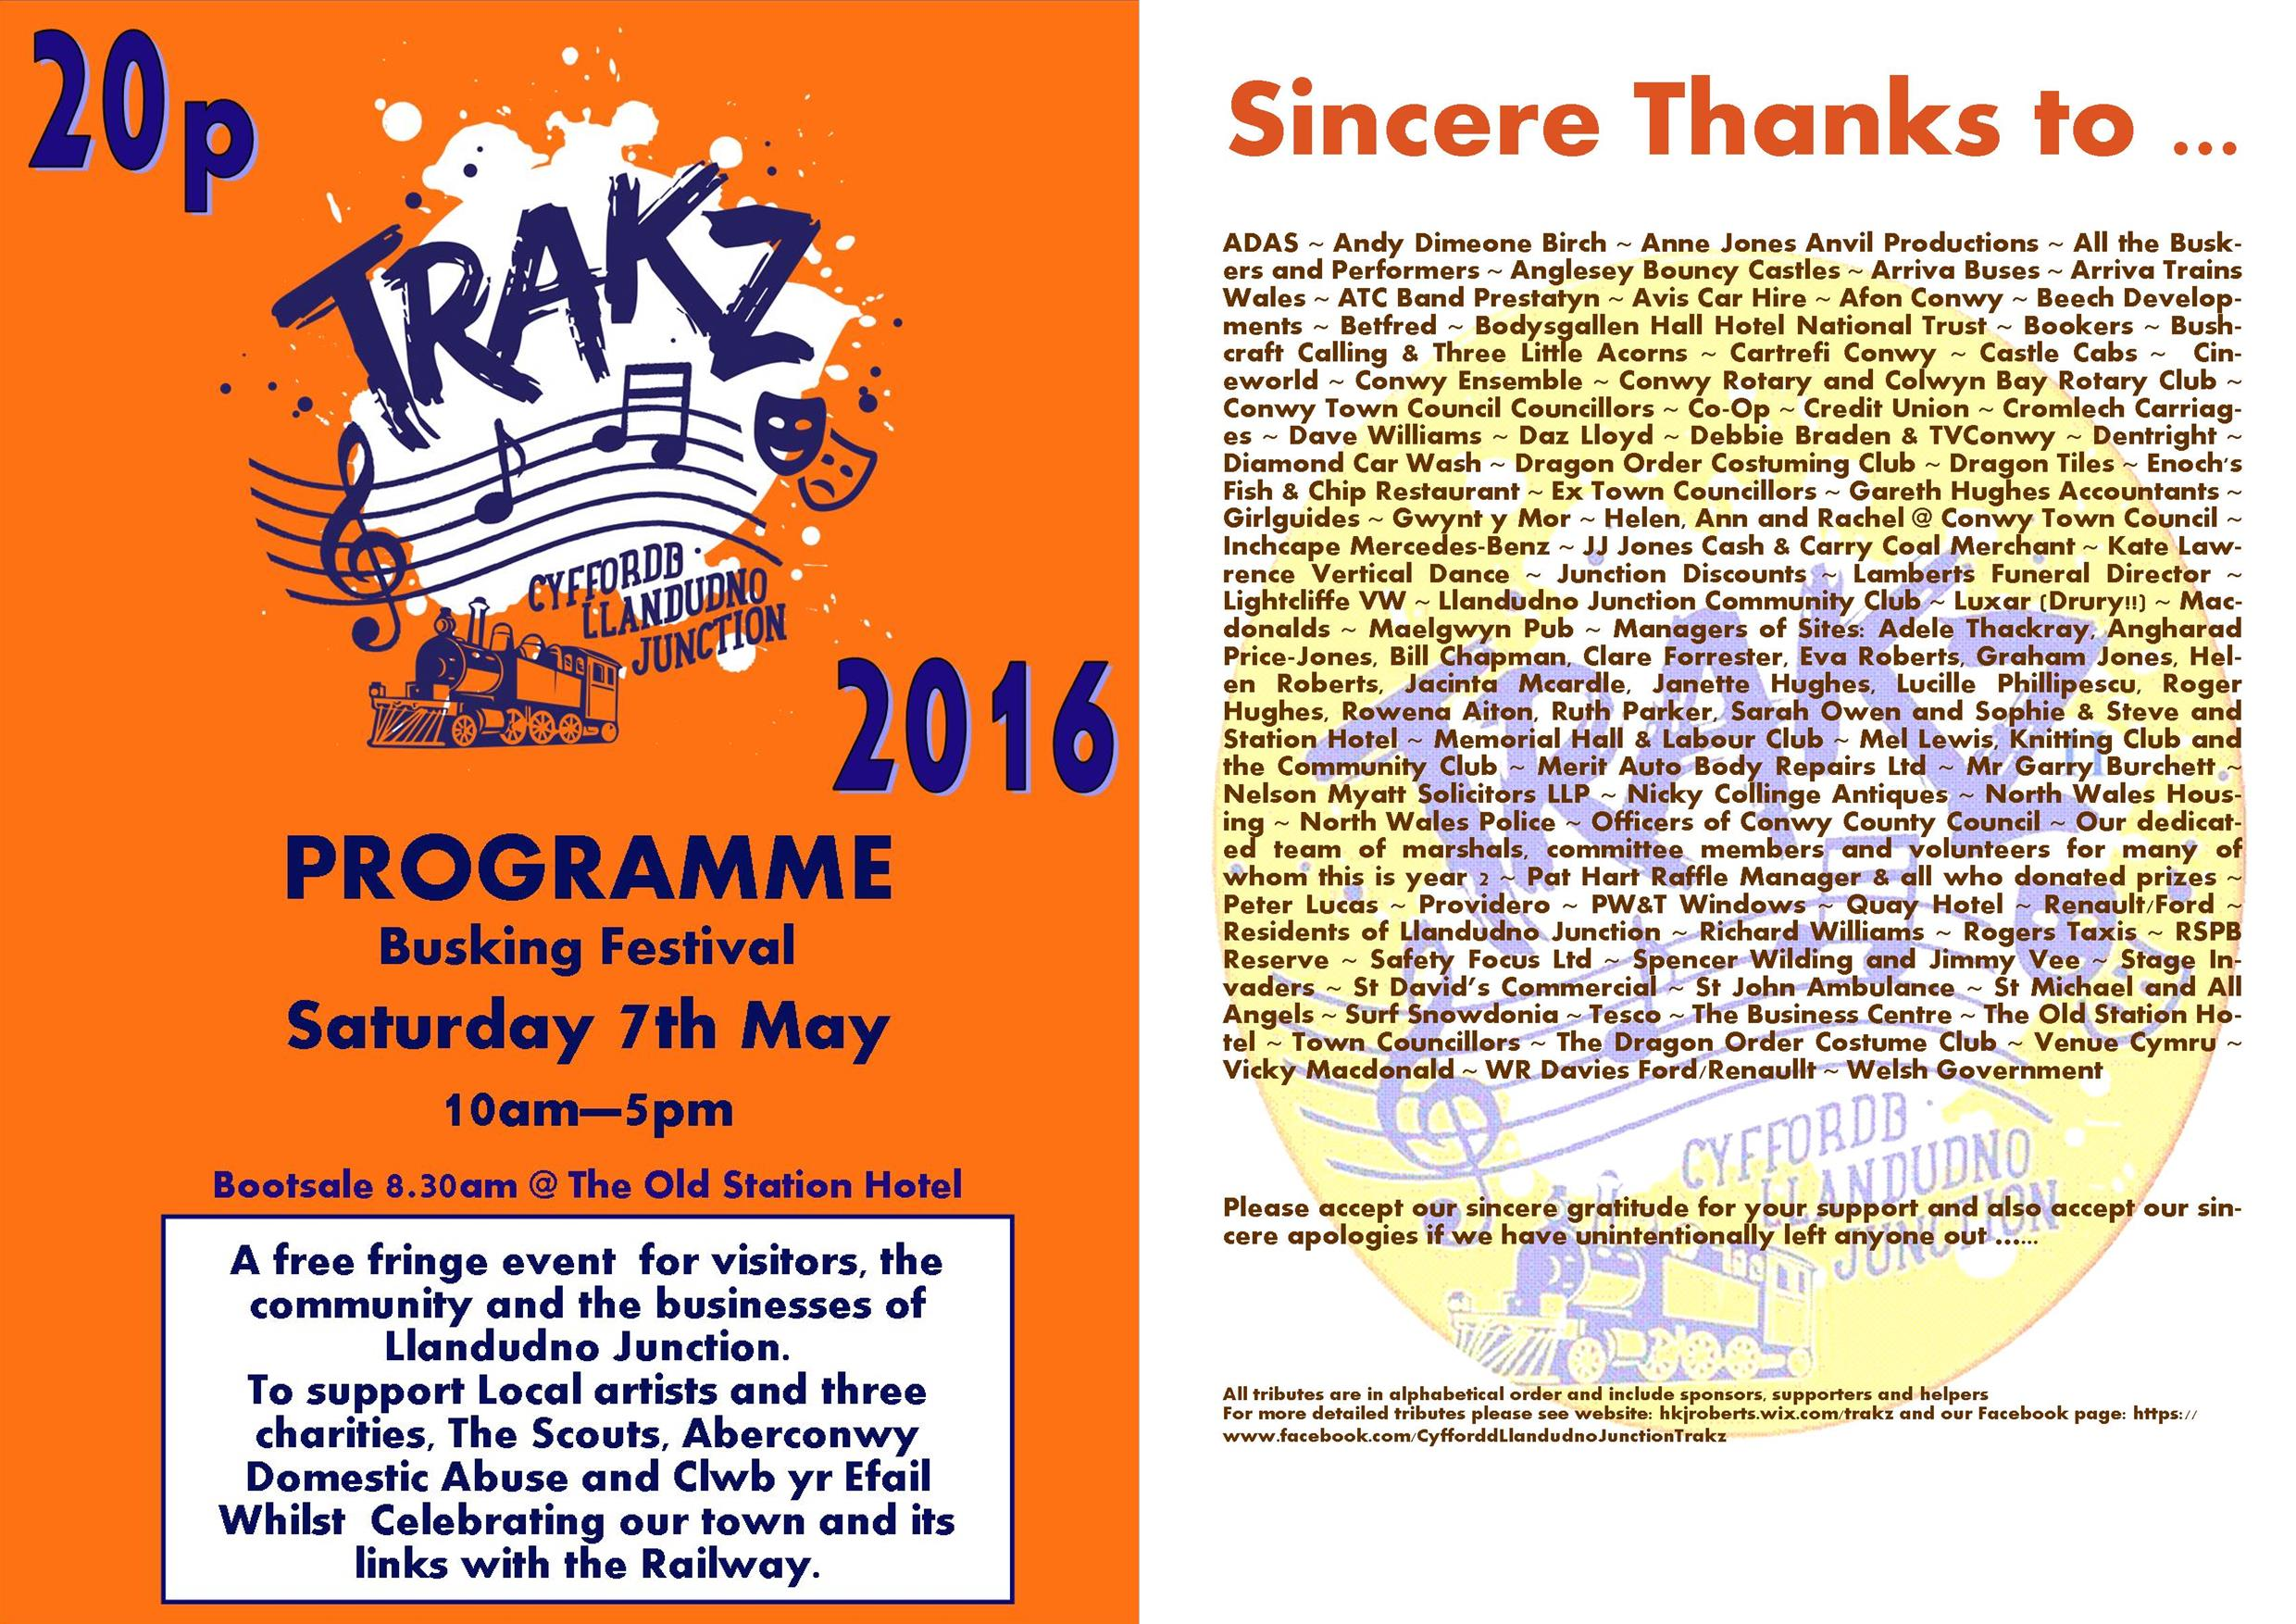 Revised back final Programme 2016.jpg